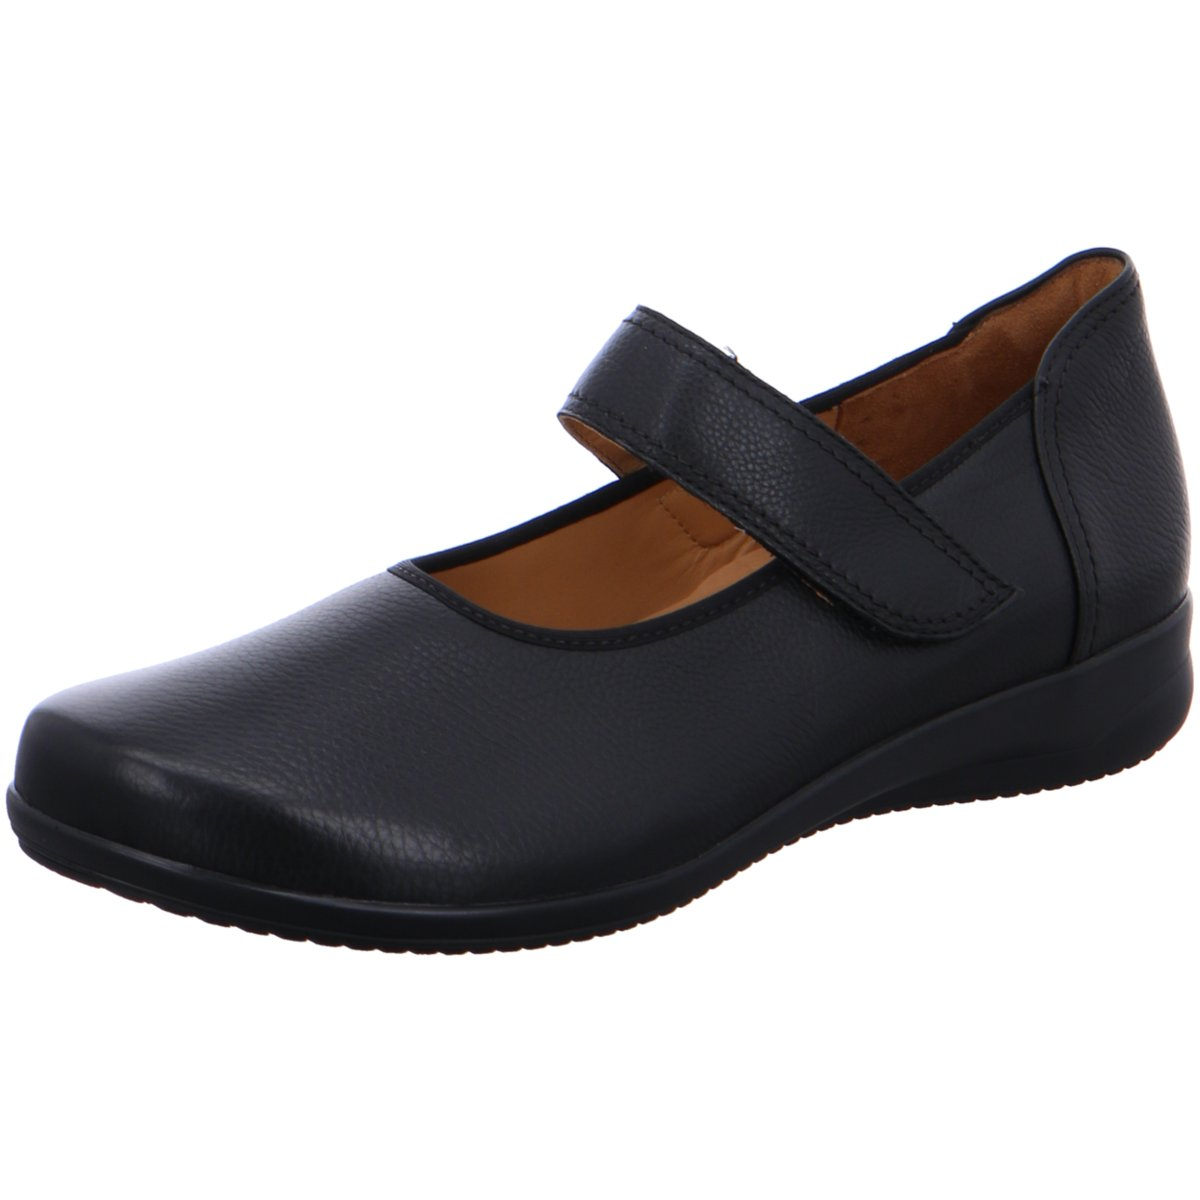 NEU Ganter Damen Slipper 5205431010 schwarz 325327